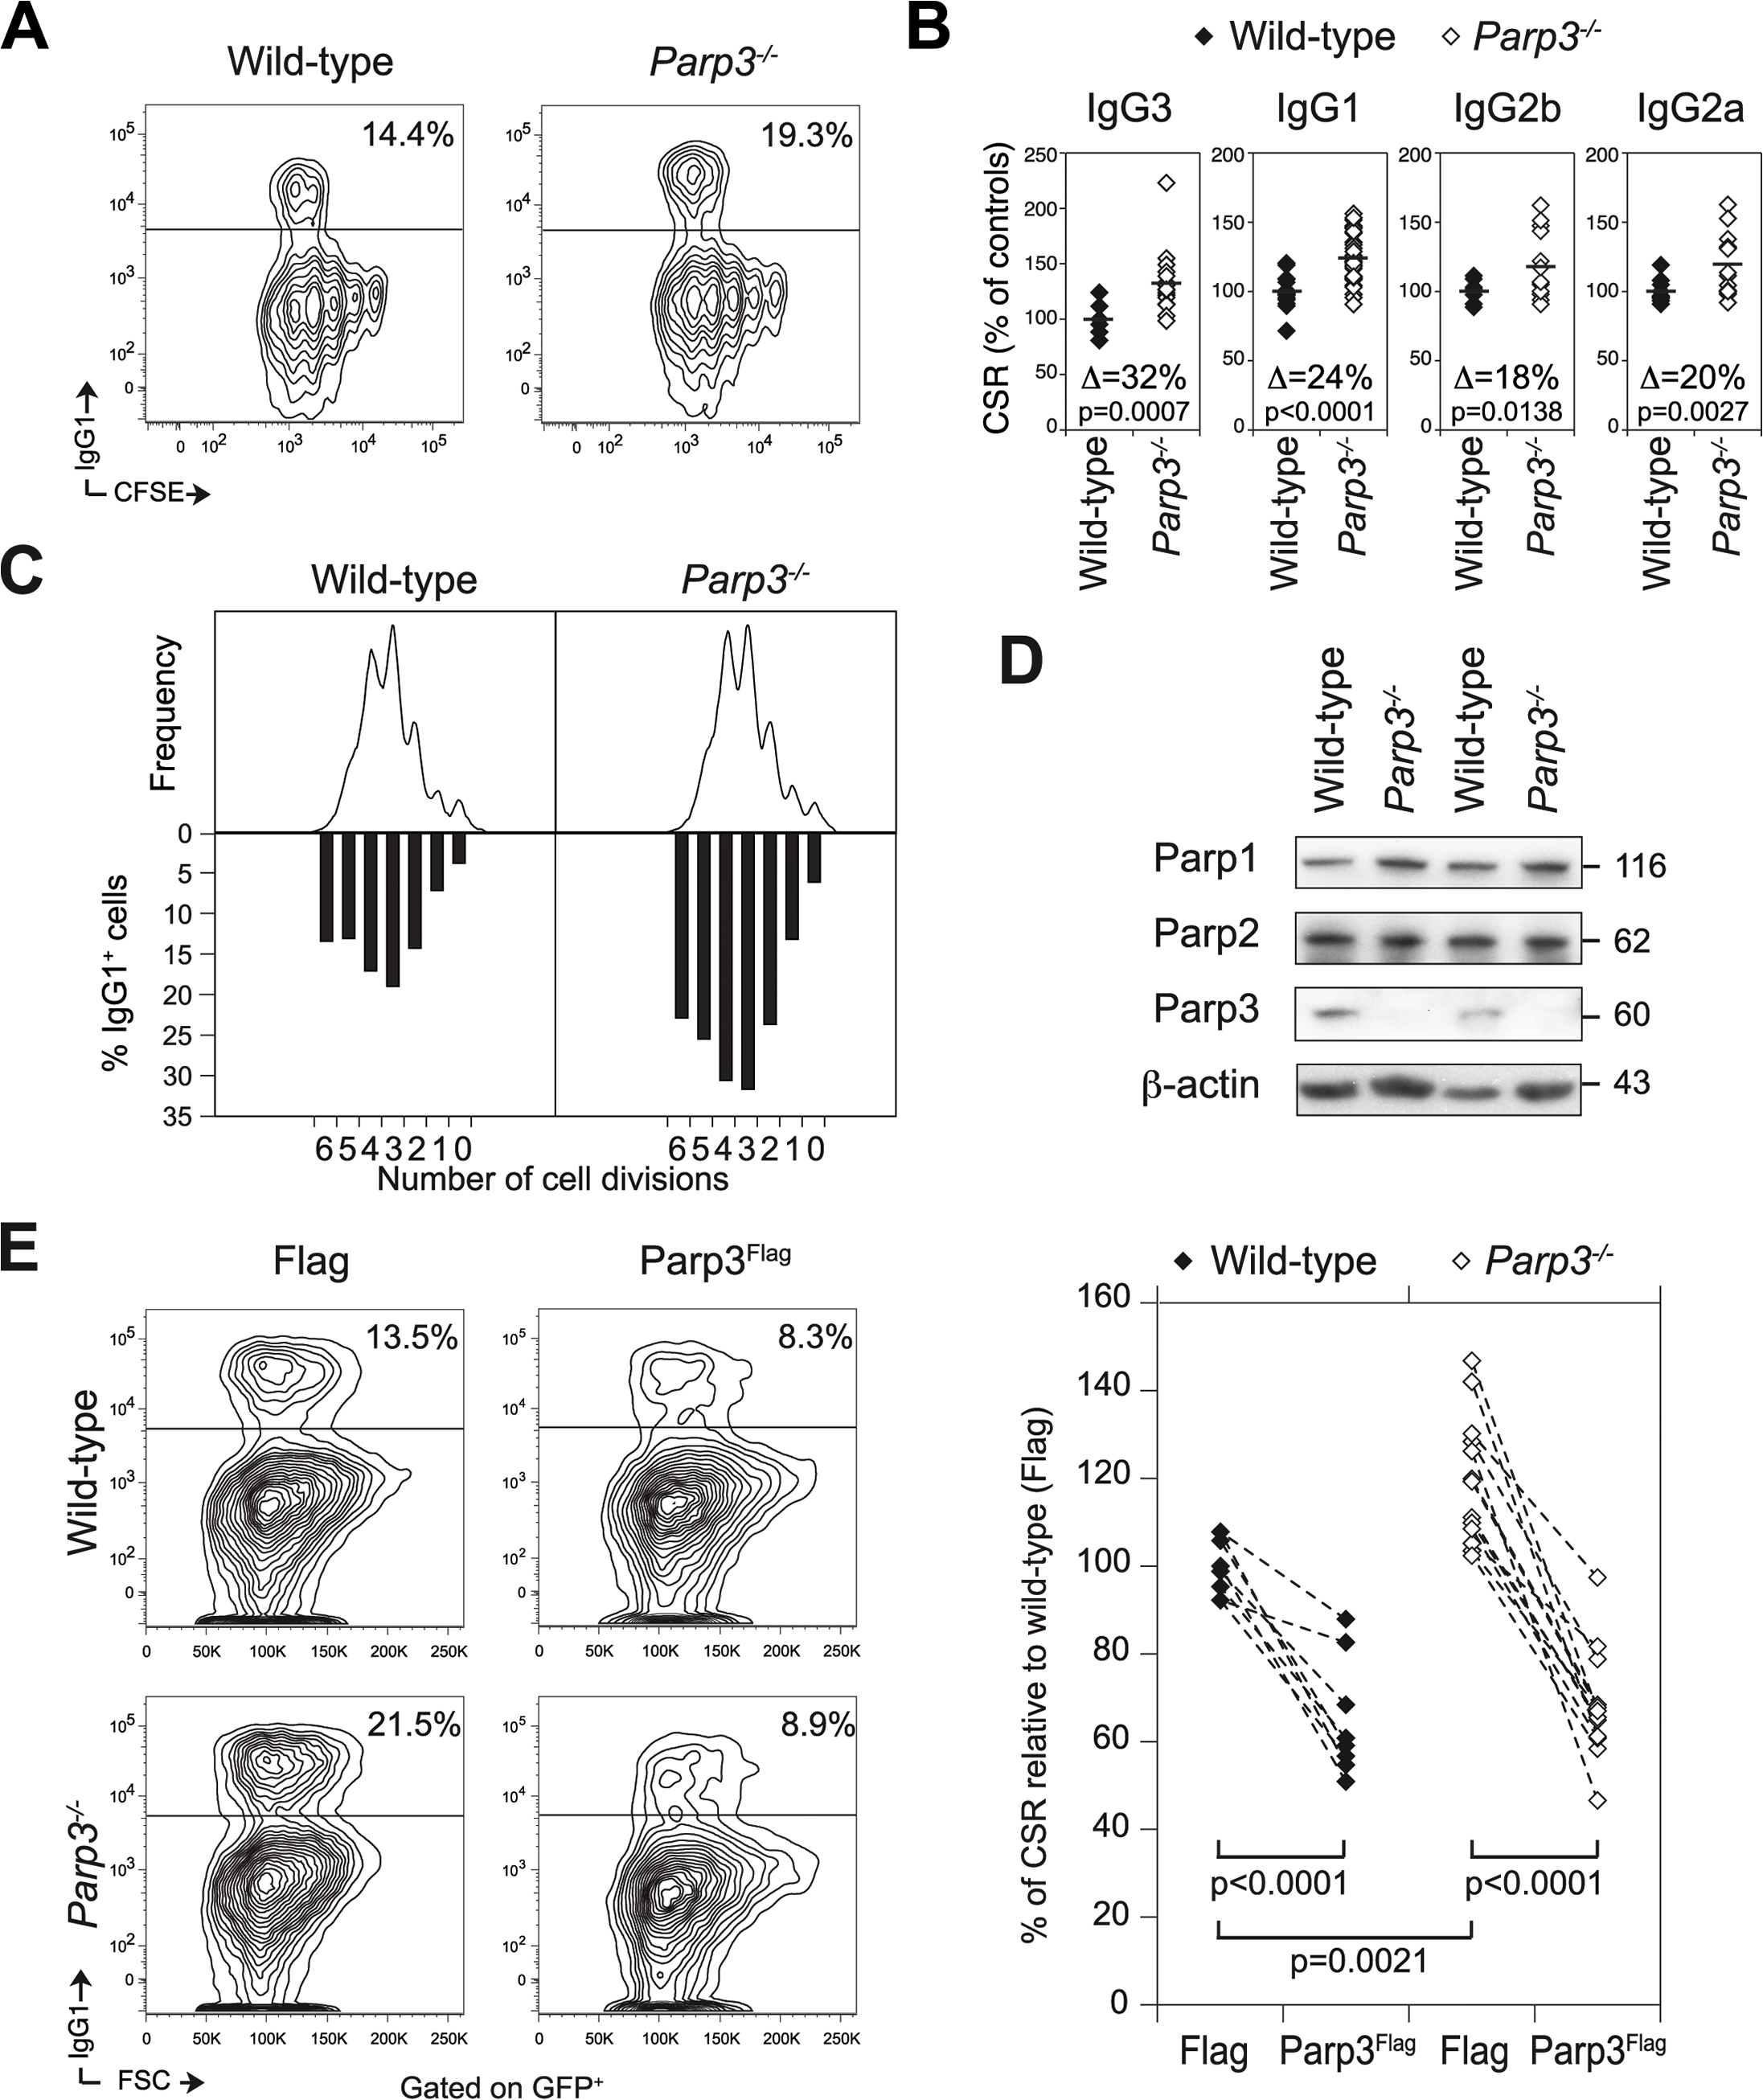 Parp3 is a negative regulator of immunoglobulin class switch recombination.